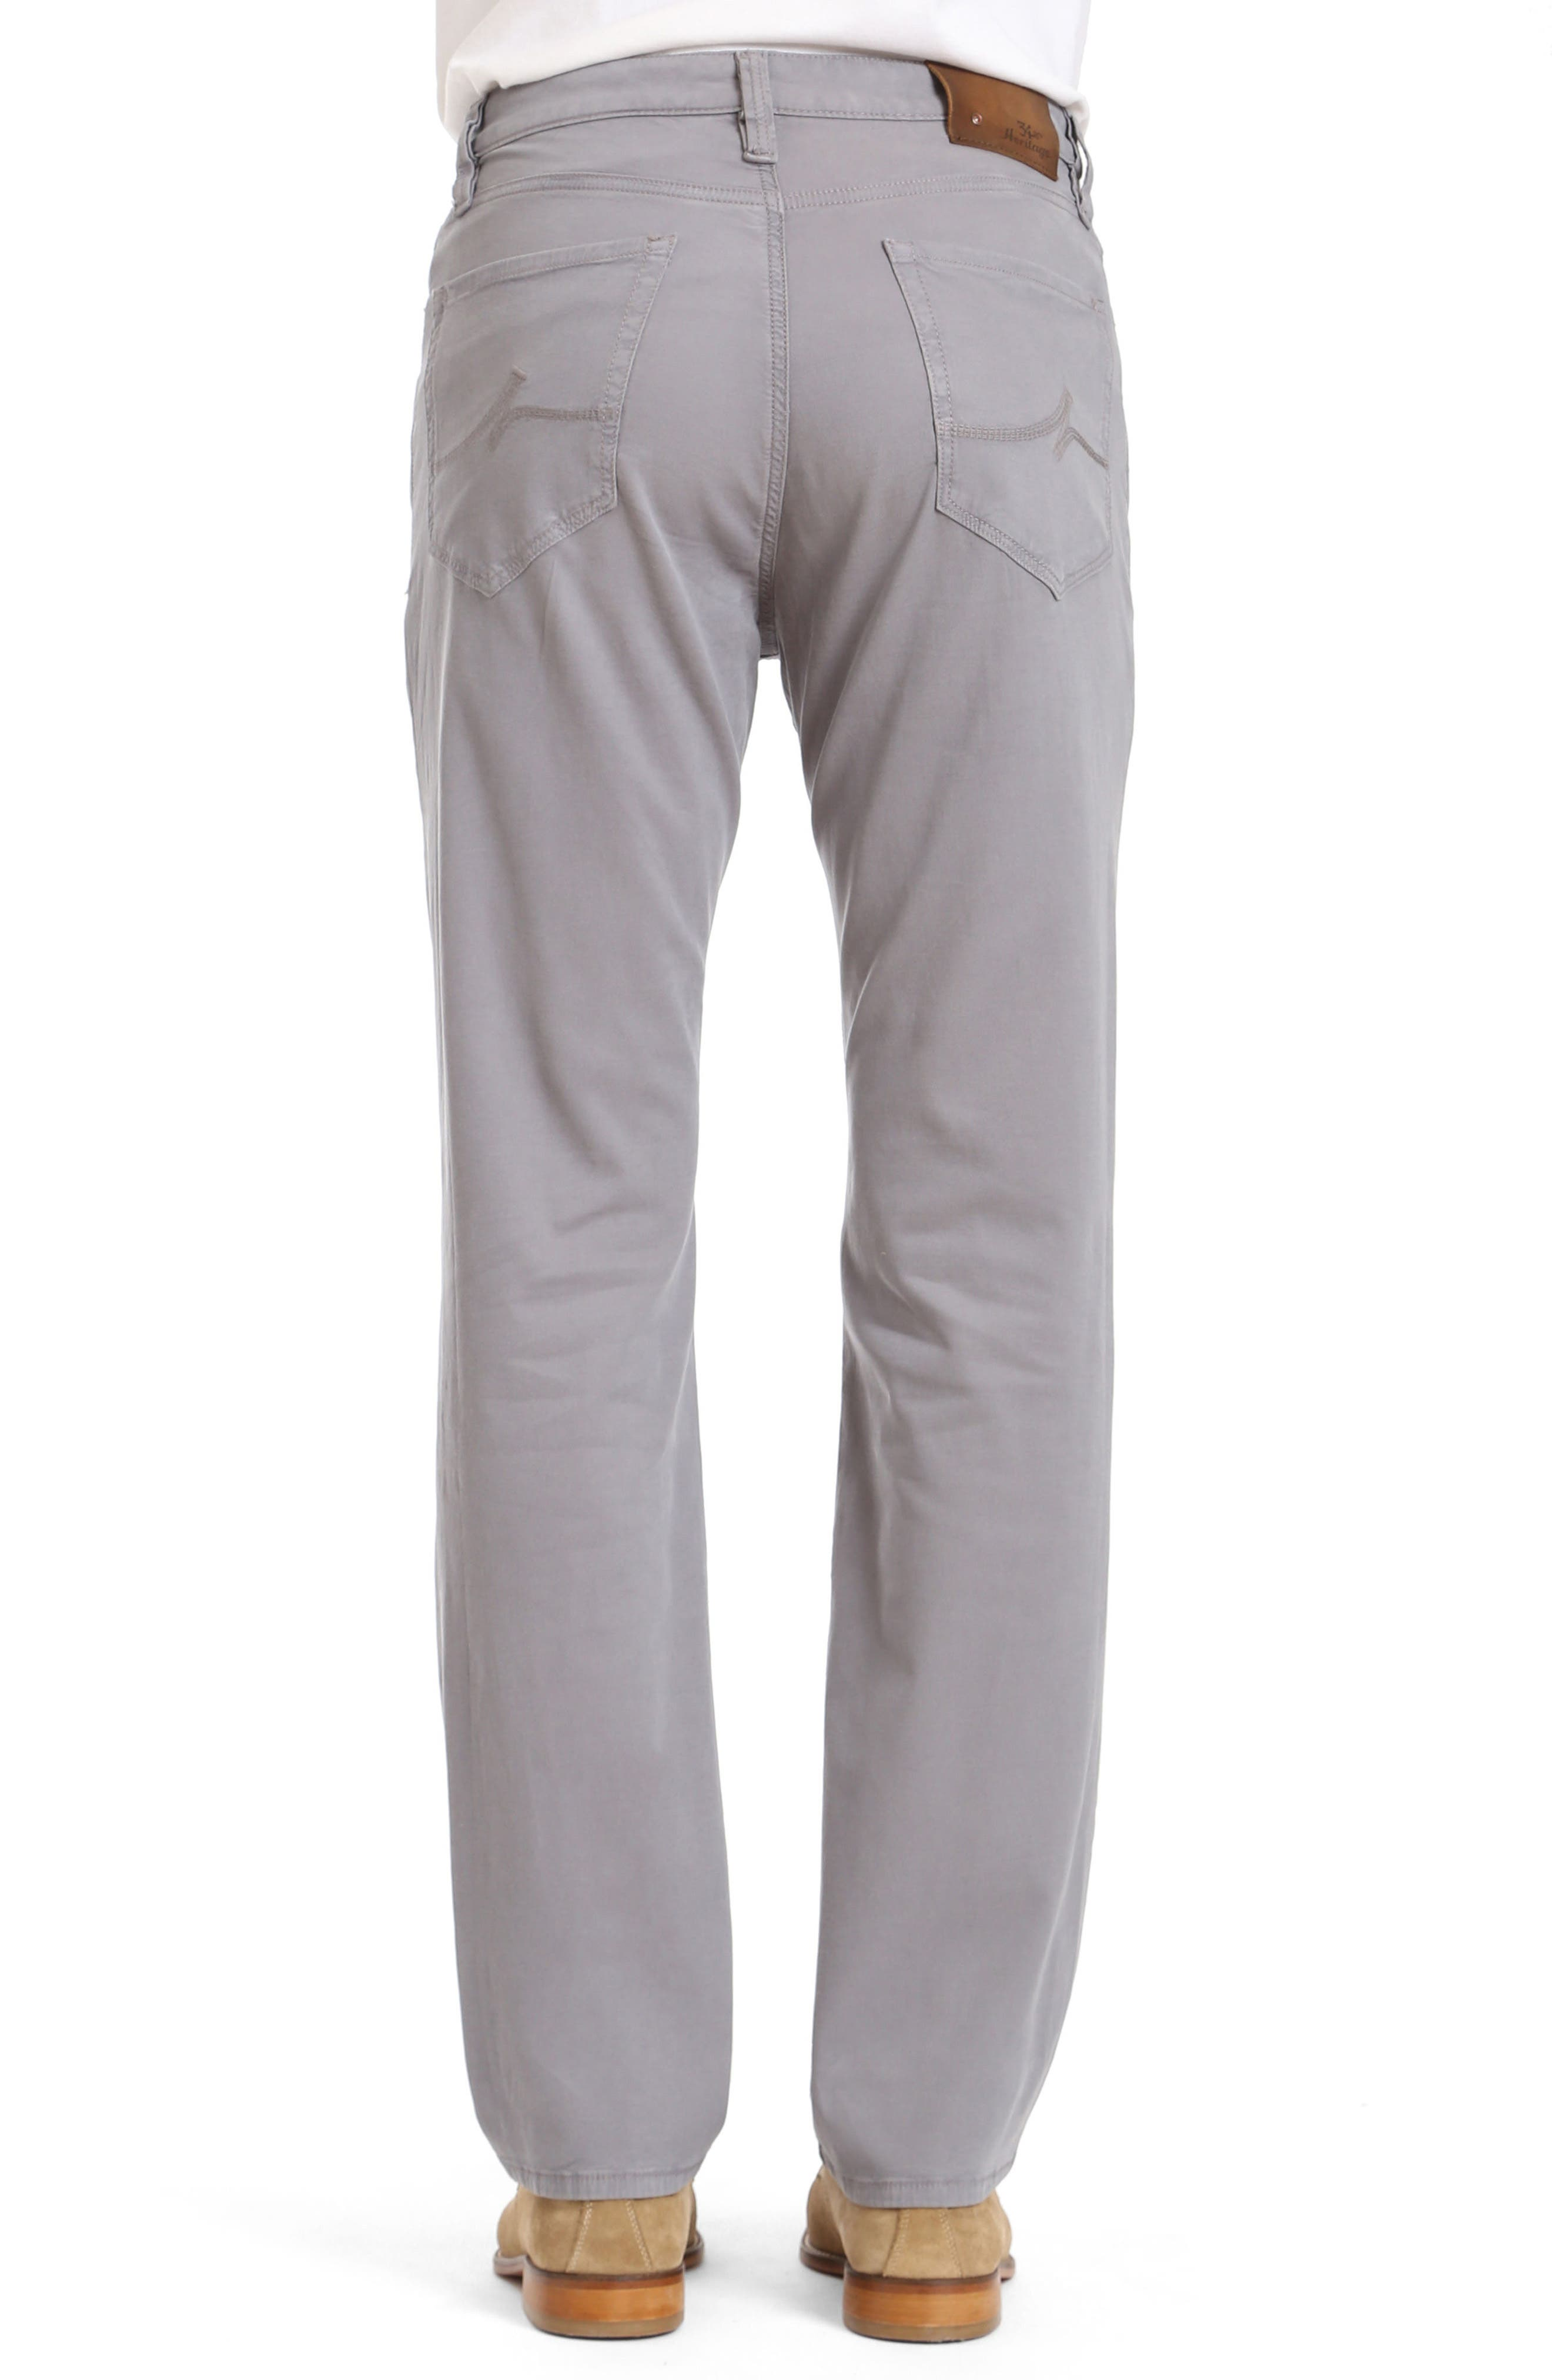 Charisma Relaxed Fit Twill Pants,                             Alternate thumbnail 2, color,                             050